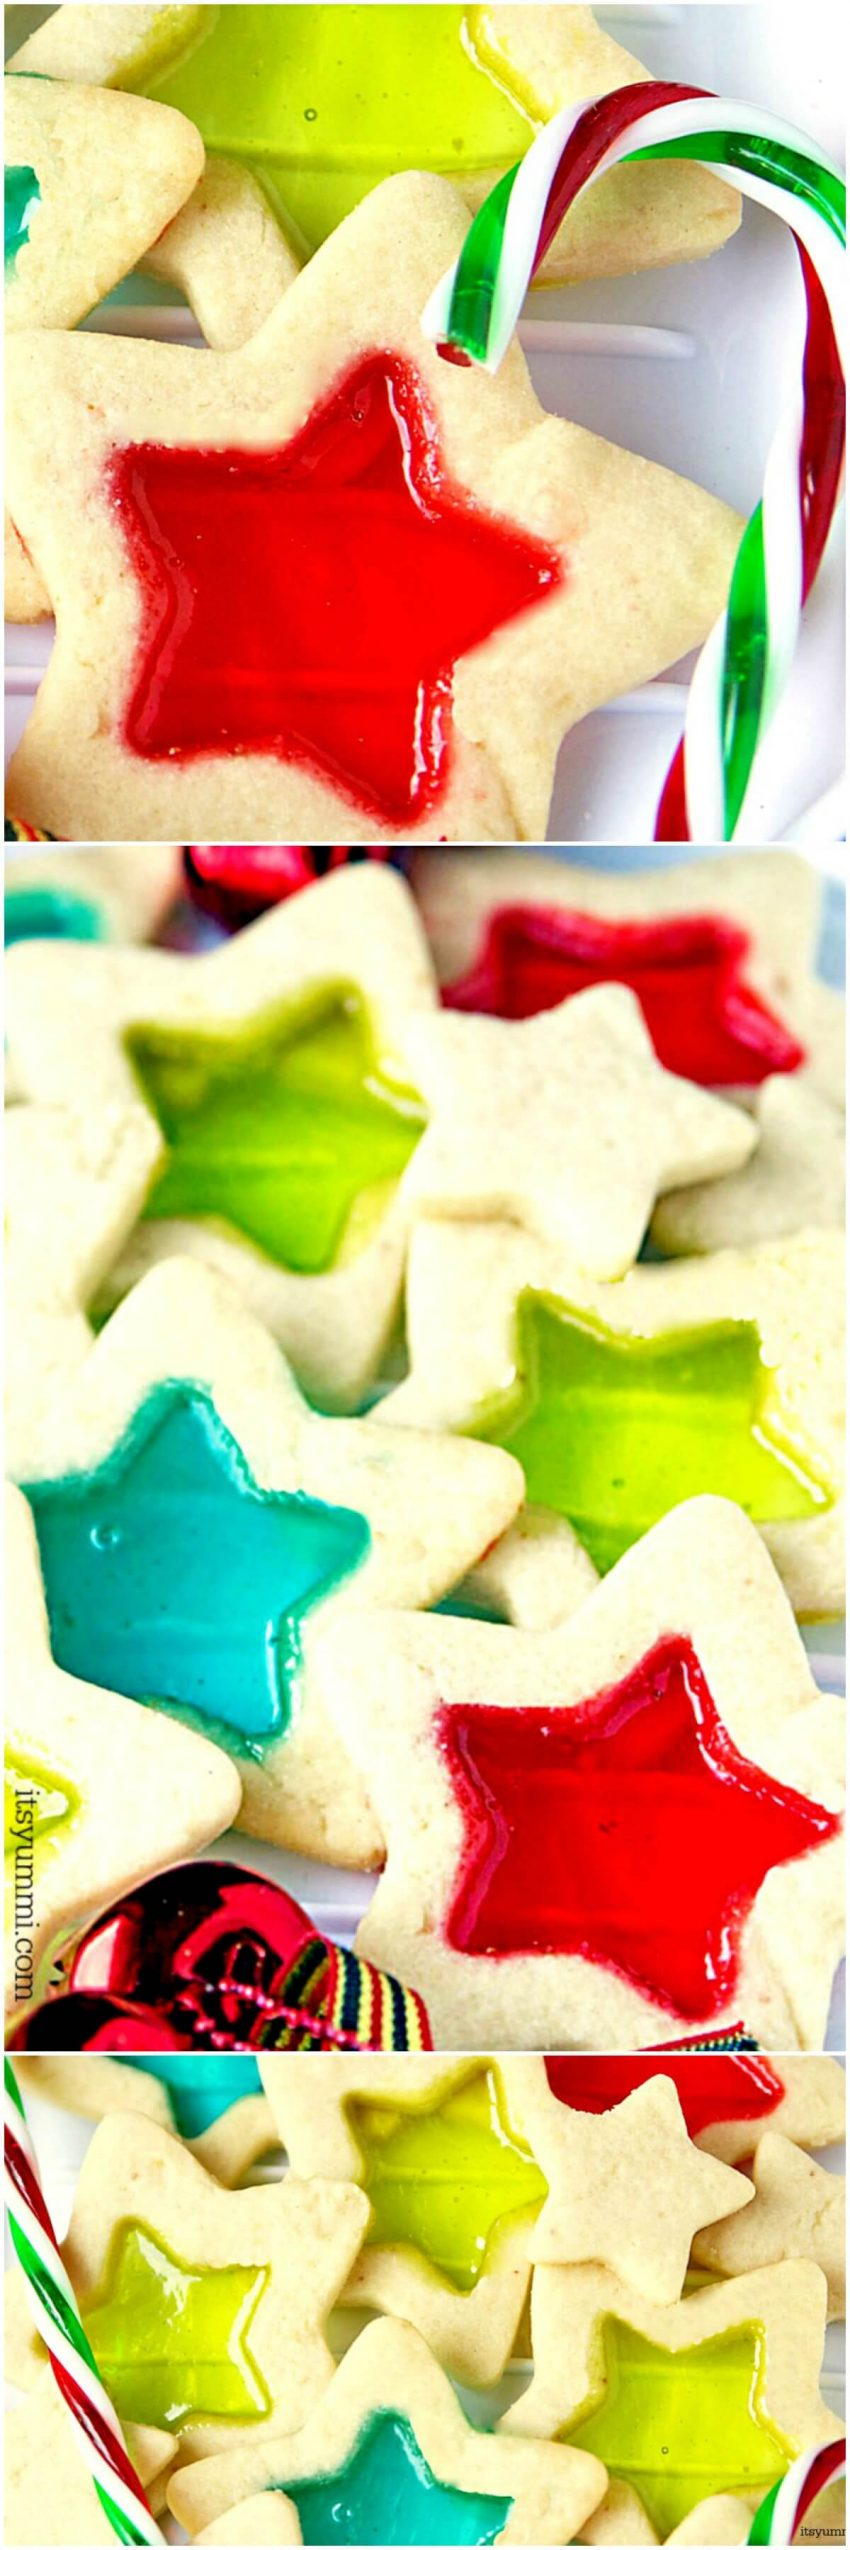 Stained Glass Christmas Cookies are beautiful, delicious, and easy to make Christmas cookies. This Christmas cookie recipe starts with soft butter cookie dough, rolled out and cut into holiday shapes, then filled with melted candies to look like stained glass.#christmas #cookies